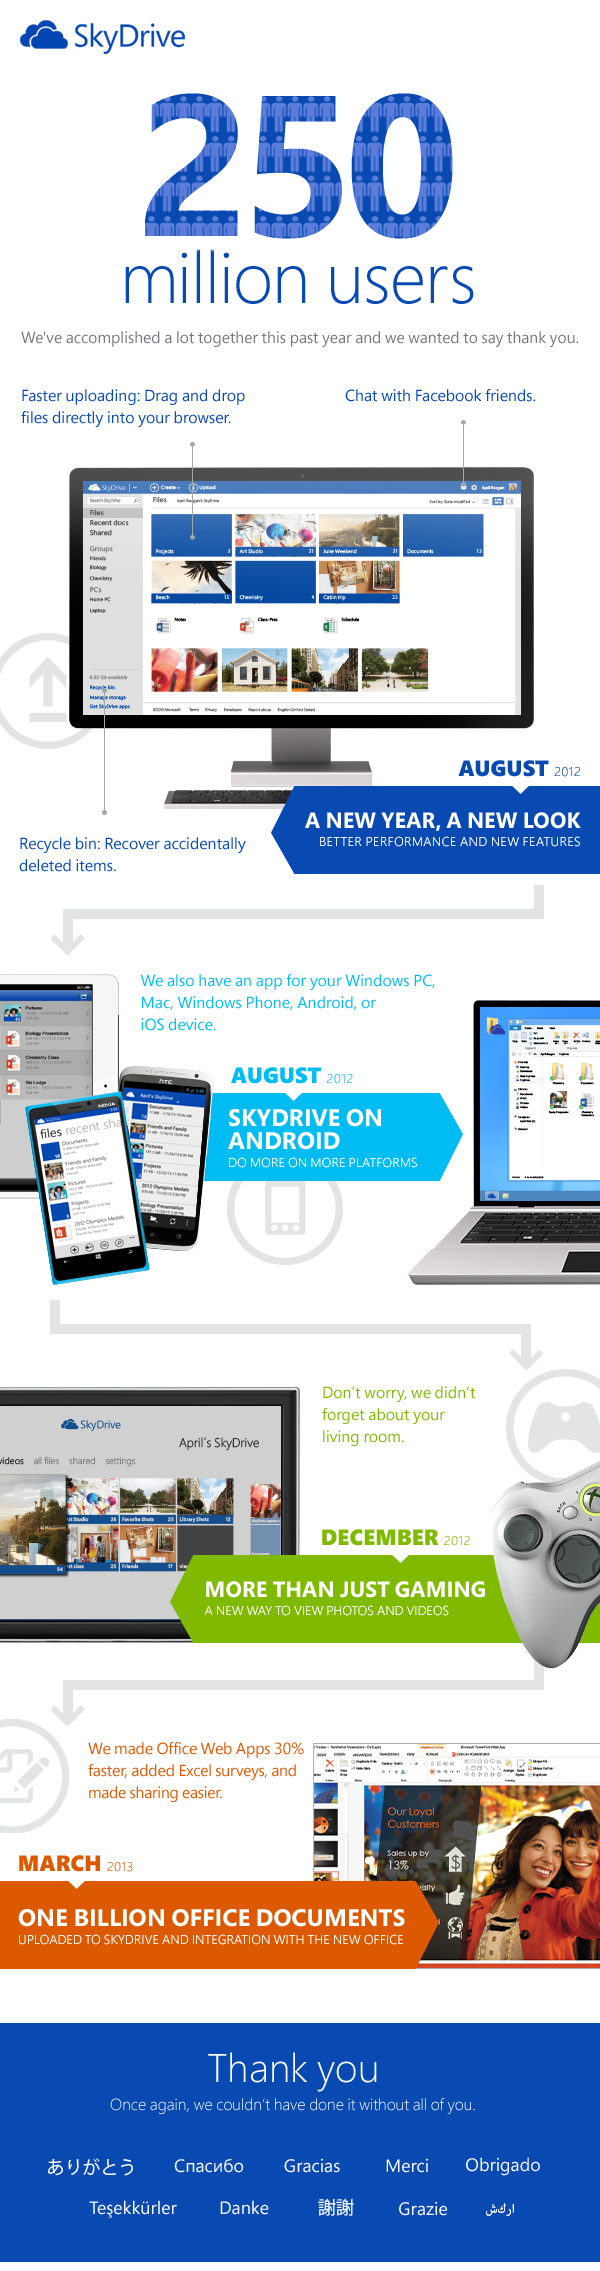 SkyDrive Anniversary 3DCCE54E Microsofts SkyDrive passes 250m users, adding 50m since the launch of Windows 8 seven months ago